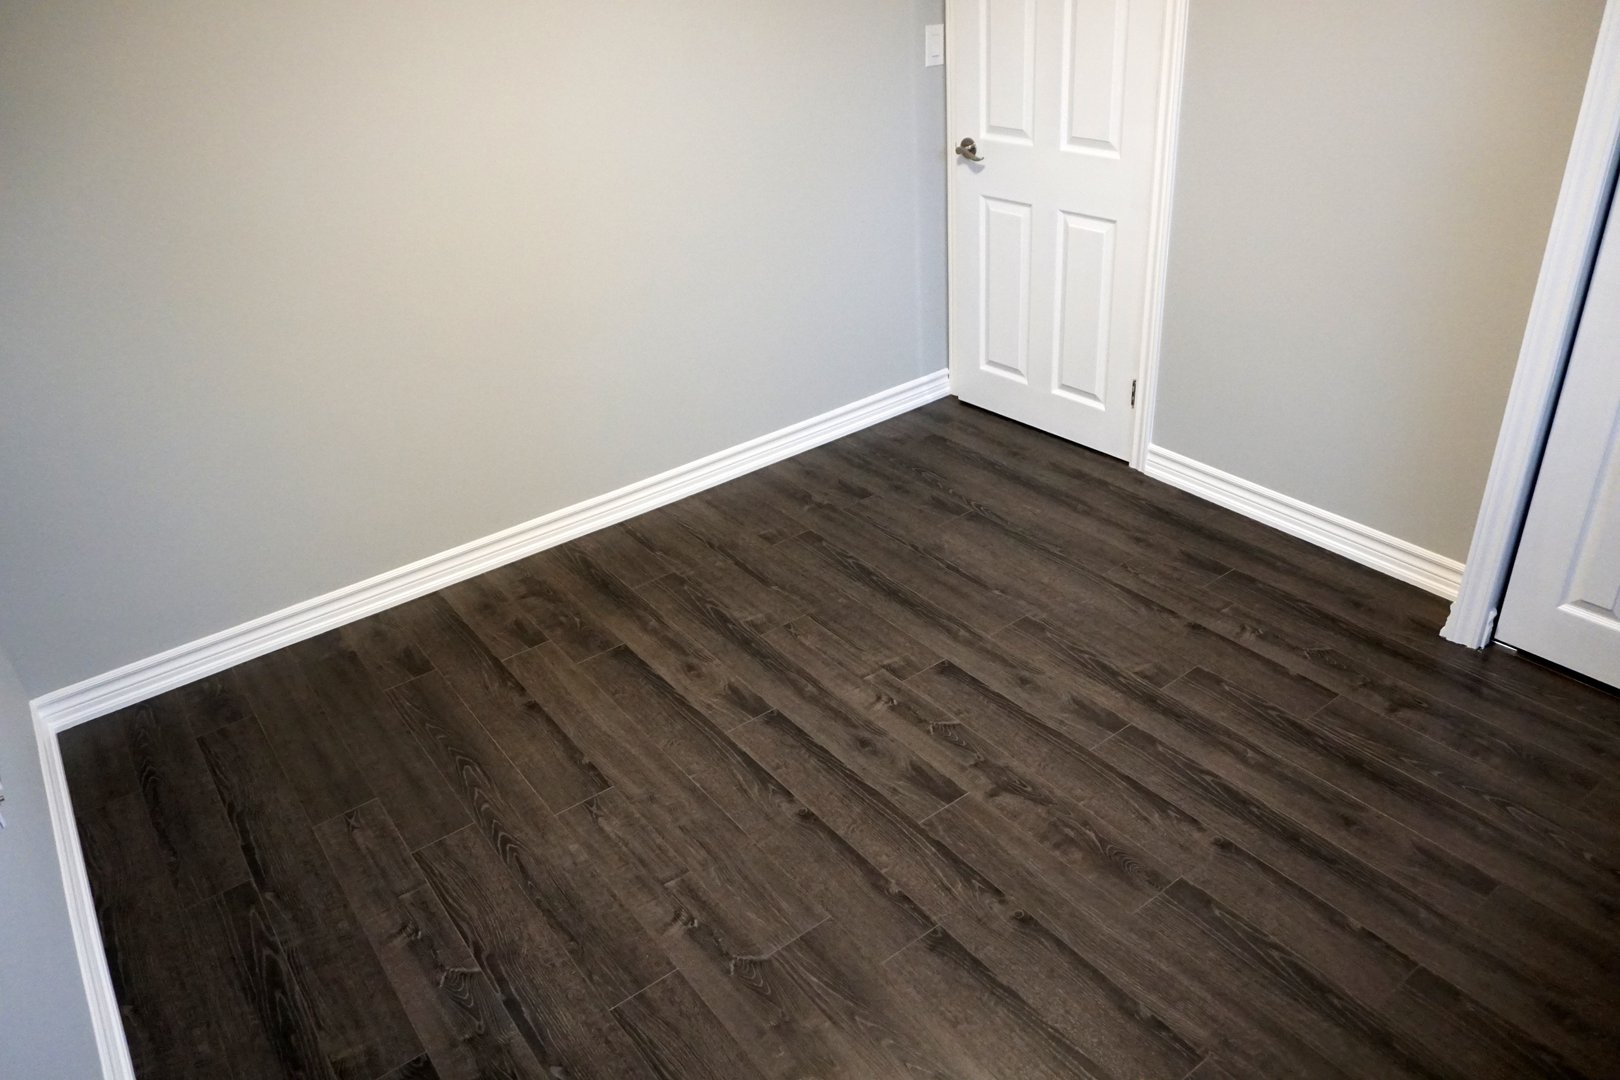 Apartment for rent at 89 David Ave, Hamilton, ON. This is the empty room with hardwood floor.